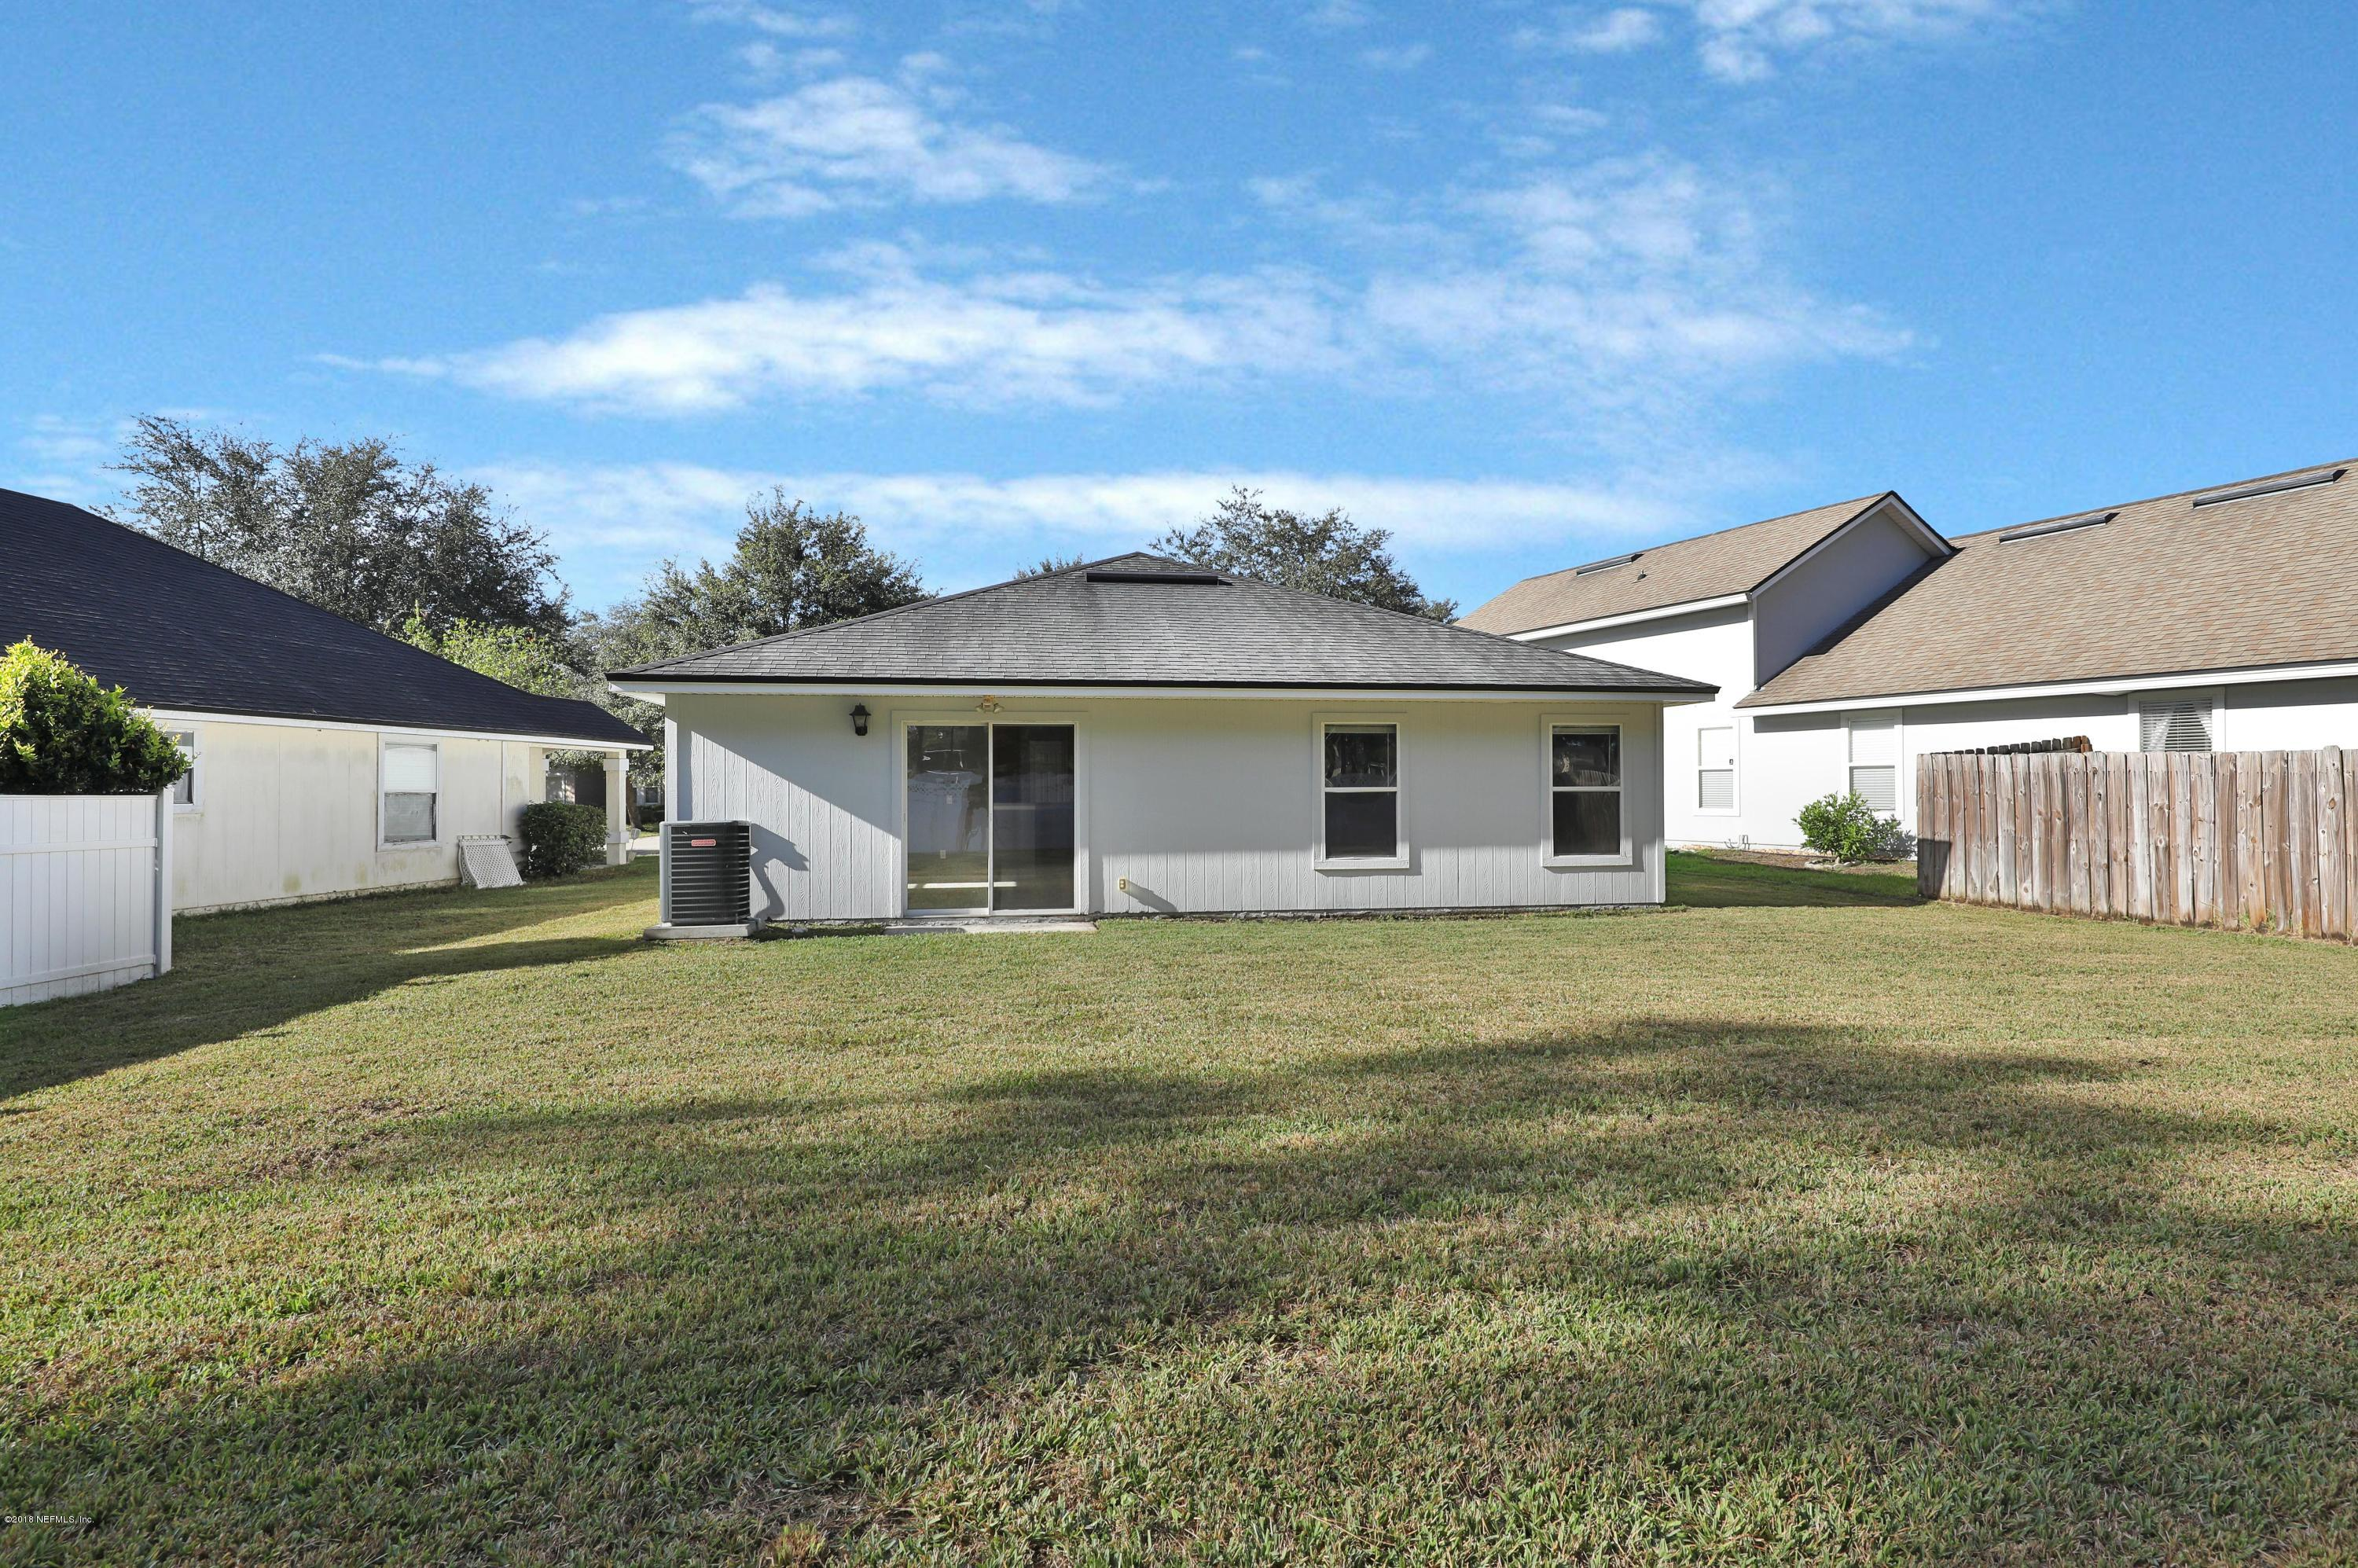 3080 LITCHFIELD, ORANGE PARK, FLORIDA 32065, 3 Bedrooms Bedrooms, ,2 BathroomsBathrooms,Residential - single family,For sale,LITCHFIELD,965394